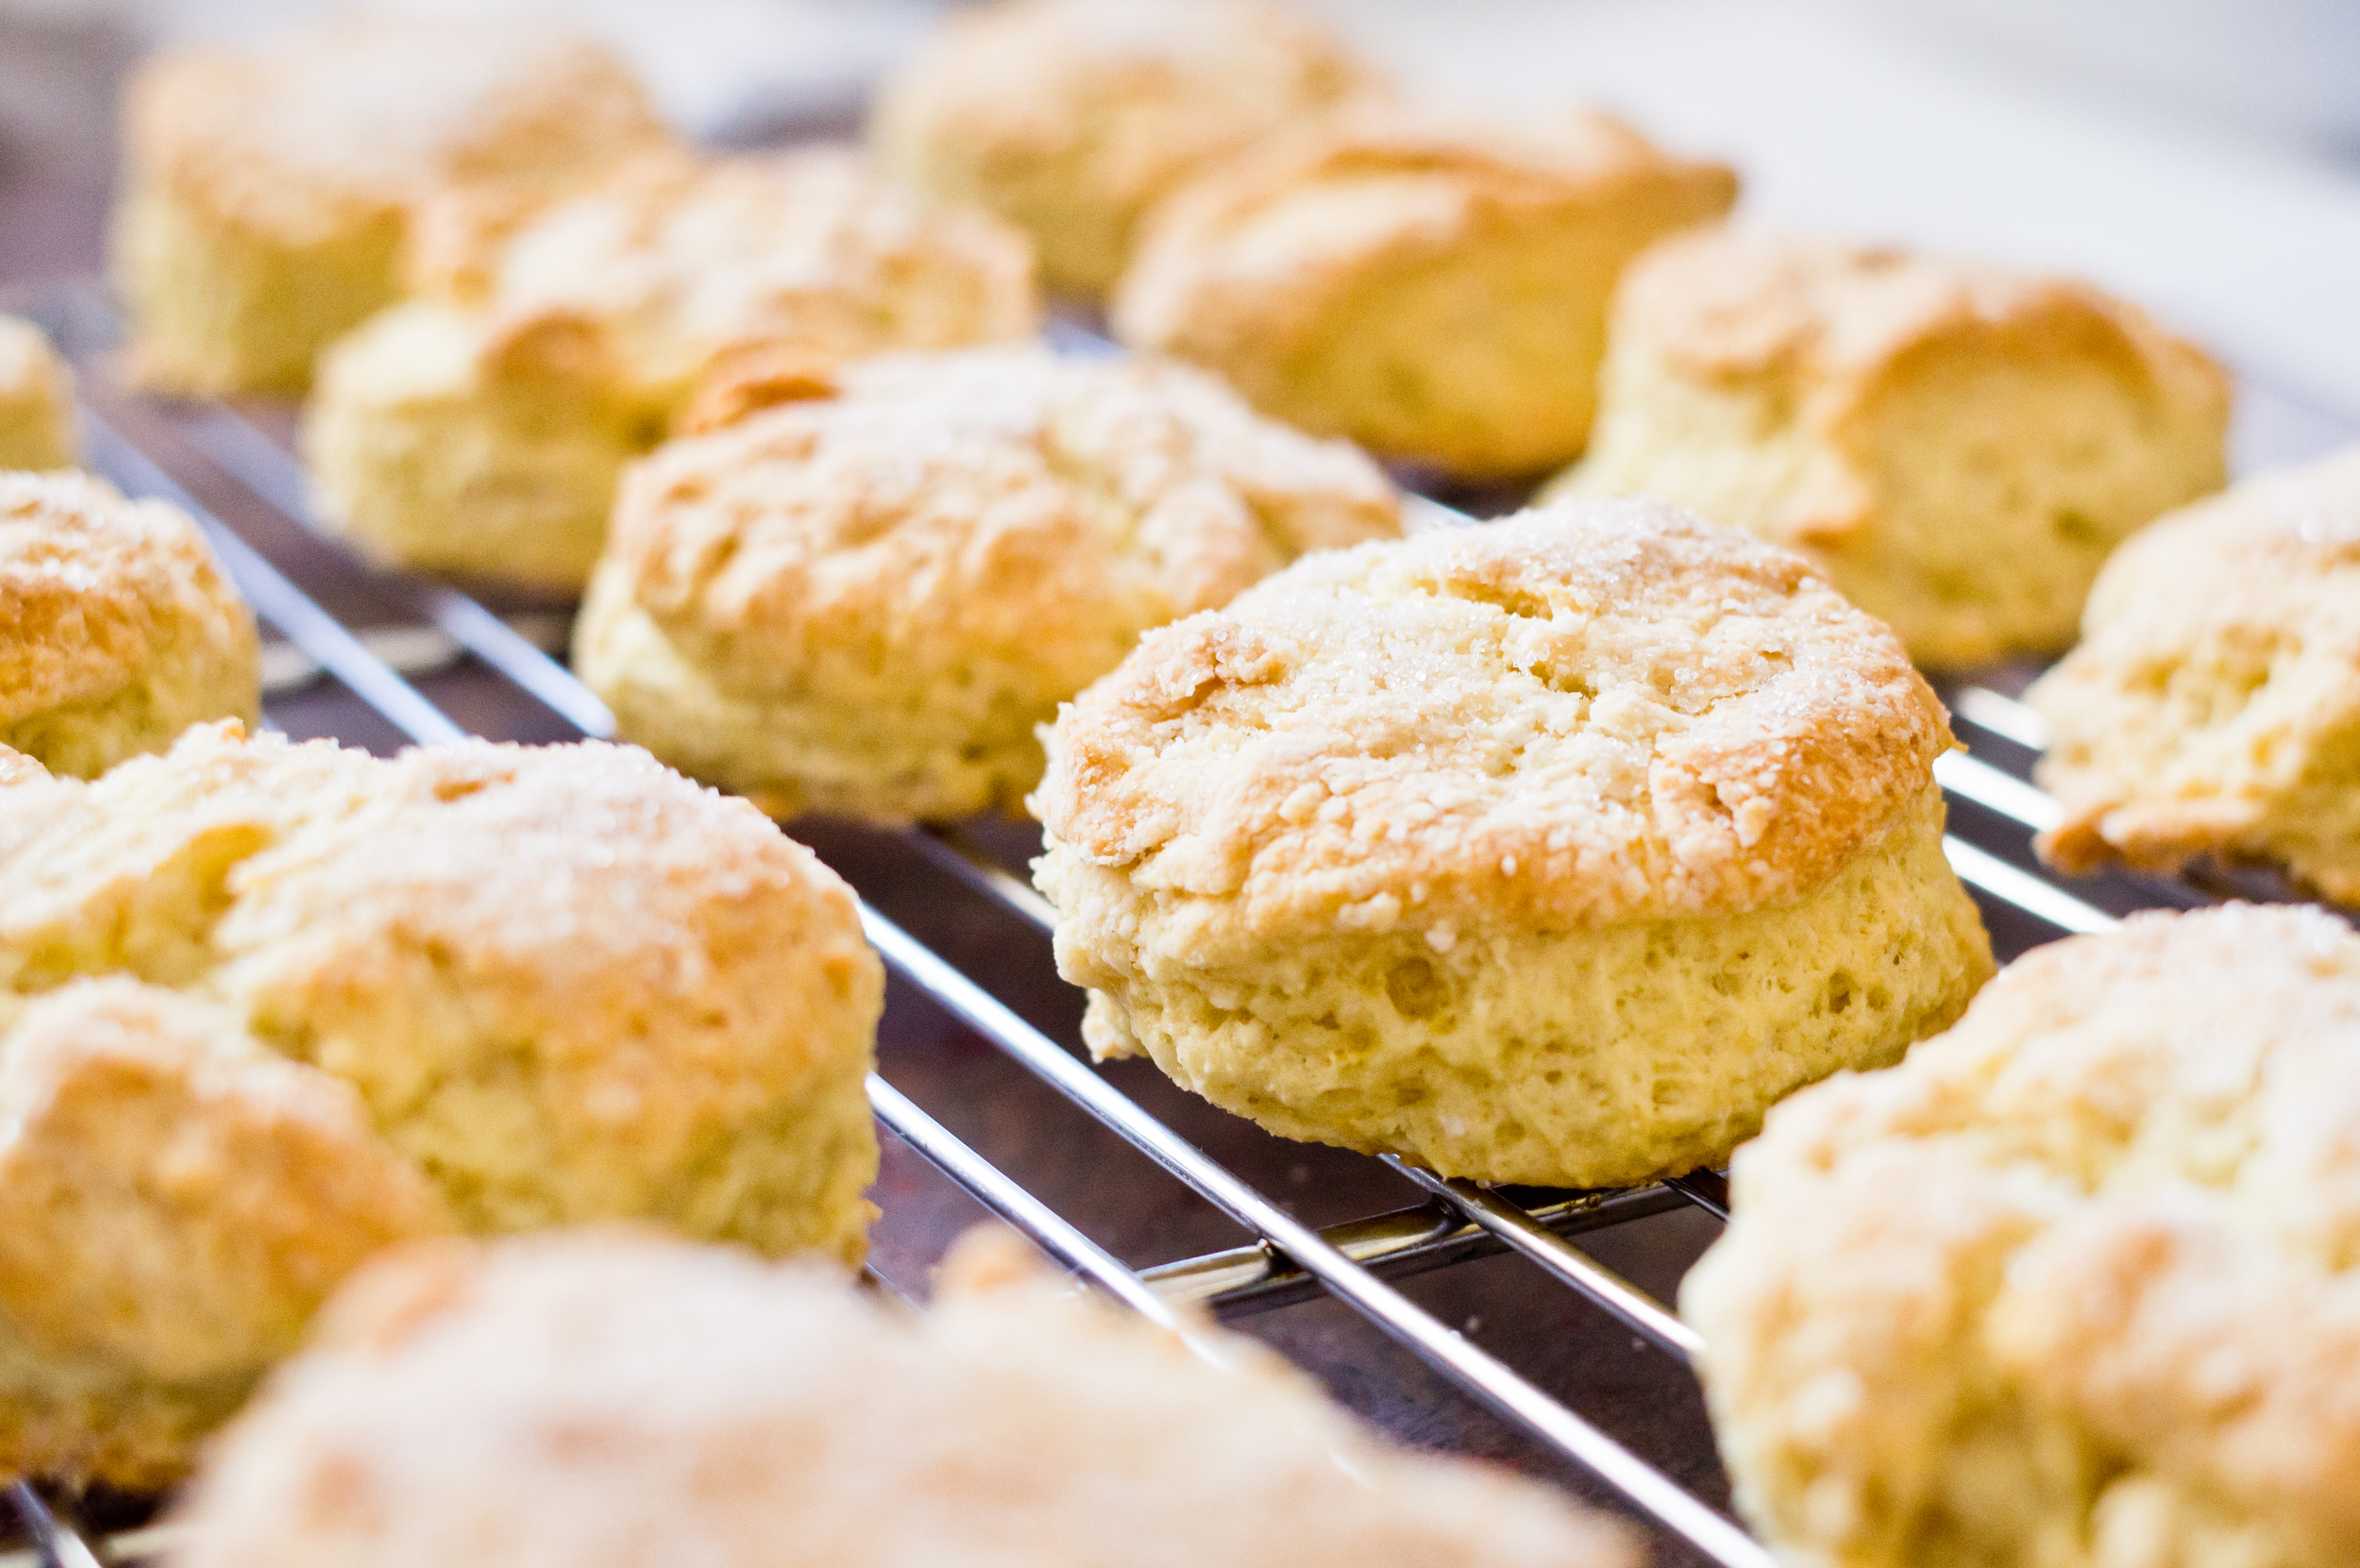 Twitchathon regulations are yet to catch up with performance-enhancing scones.